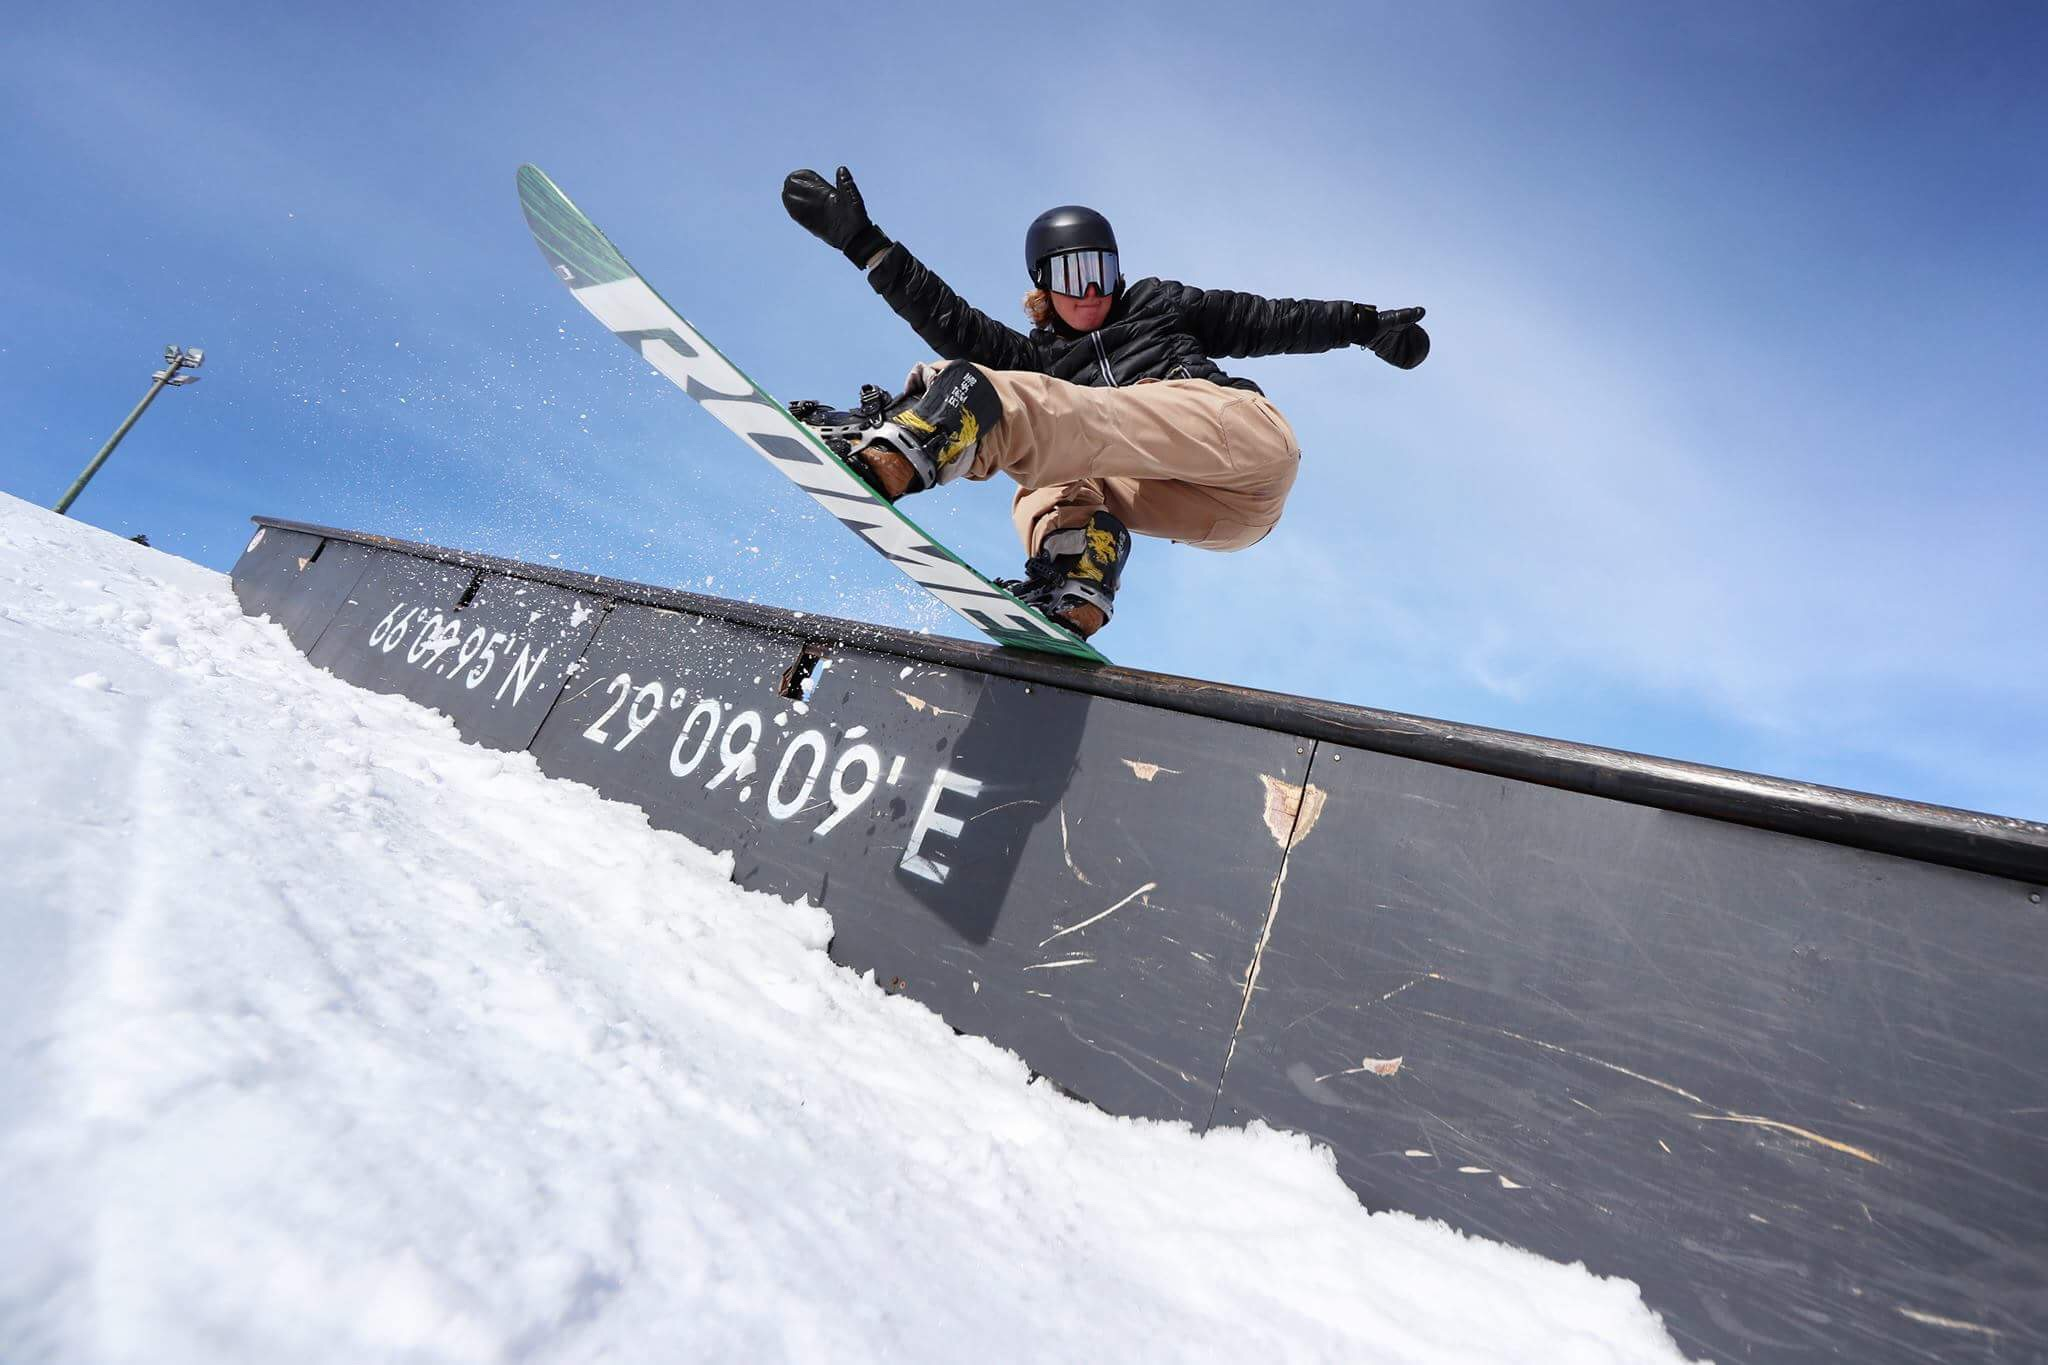 Rene Rinnekangas – another sick new Am for Rome Snowboards